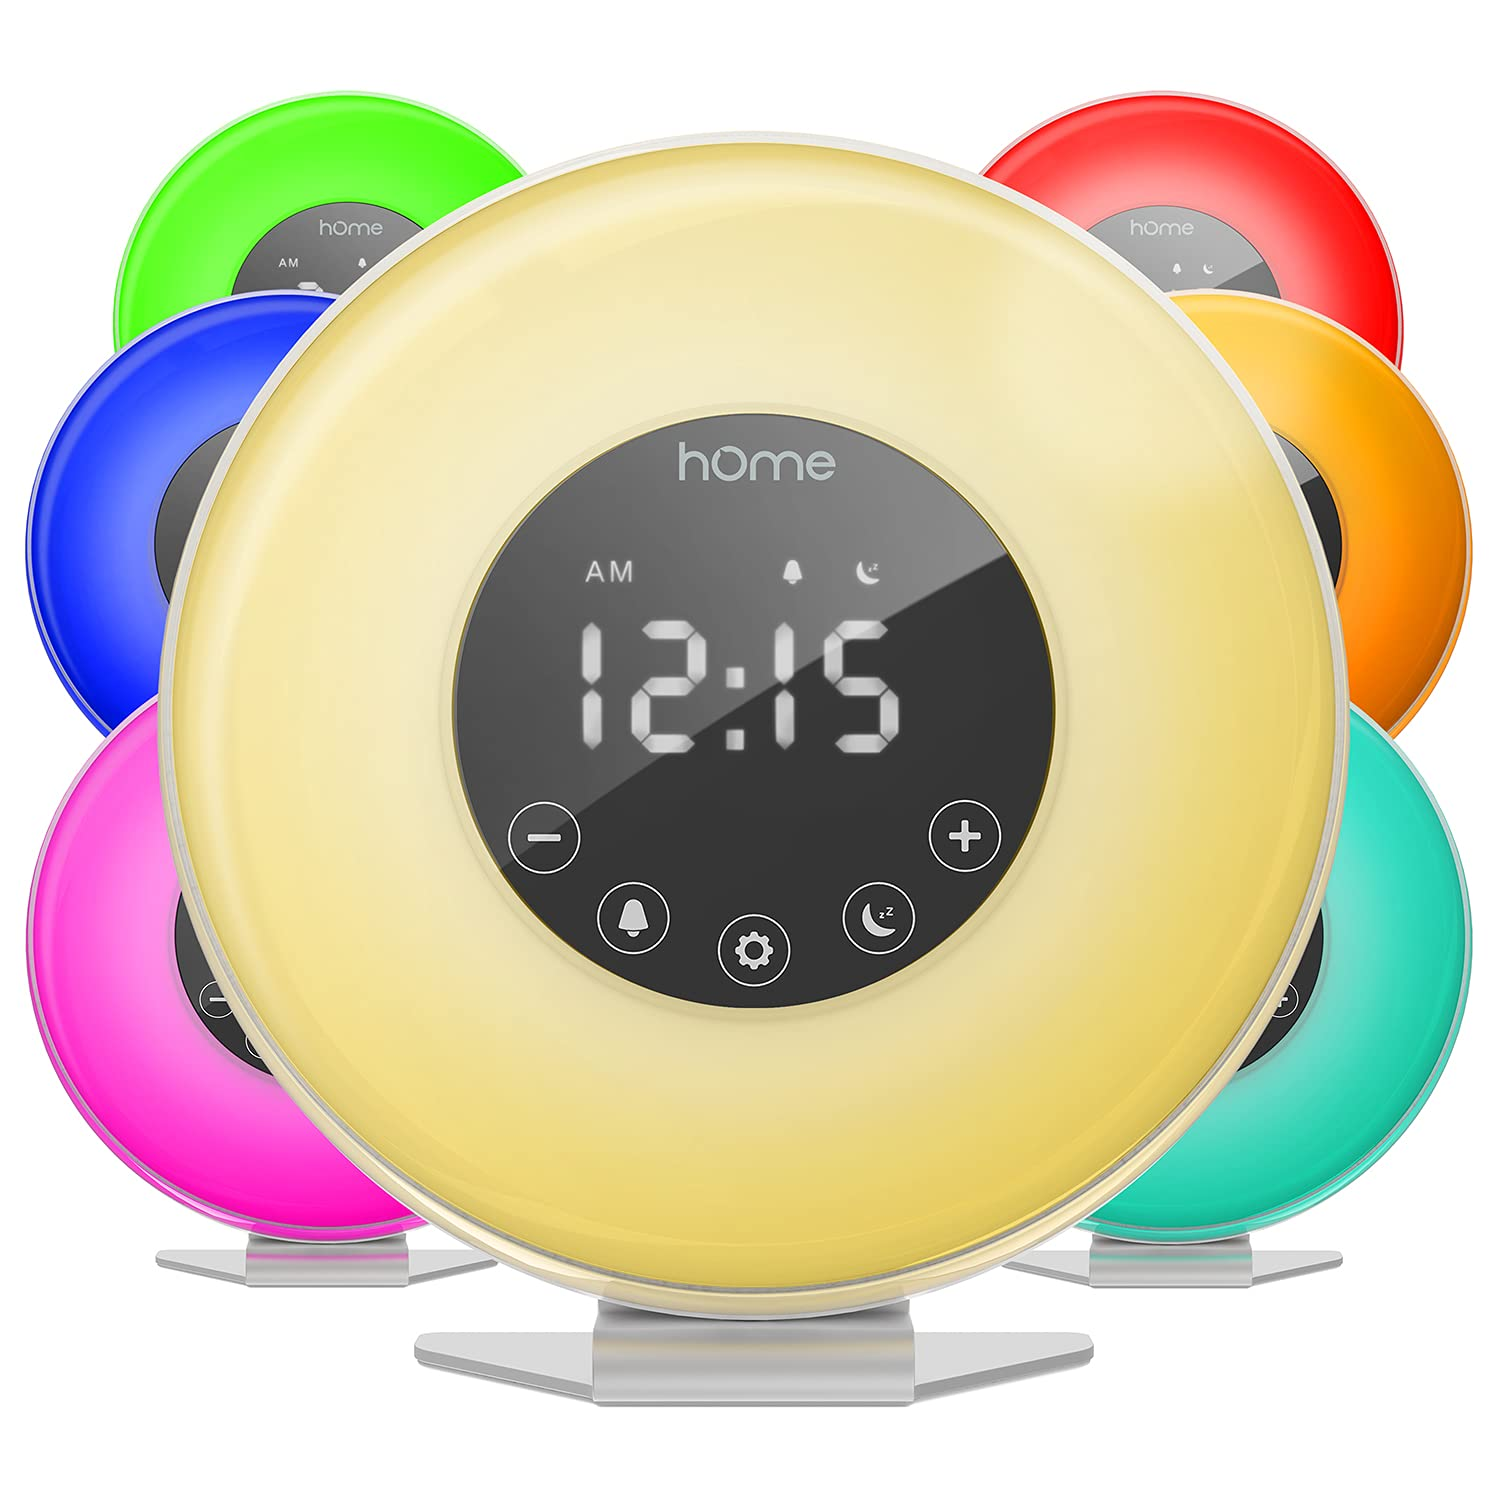 Amazon.com: hOmeLabs Sunrise Alarm Clock - Digital LED Clock with 6 Color  Switch and FM Radio for Bedrooms - Multiple Nature Sounds Sunset Simulation  & Touch Control - with Snooze Function for